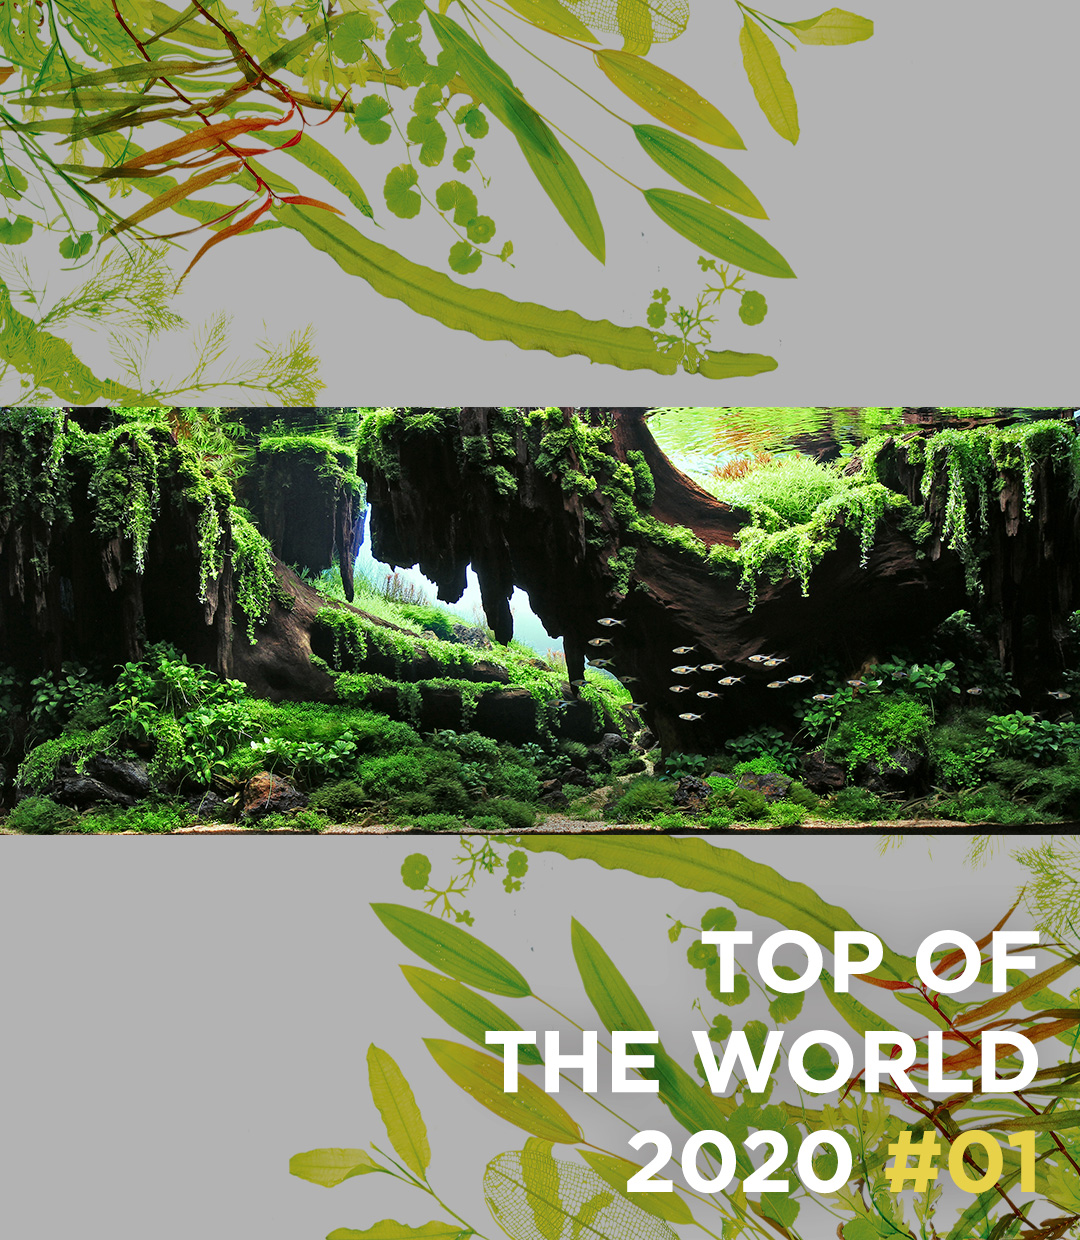 TOP OF THE WORLD 2020 #01 Siak Wee Yeo